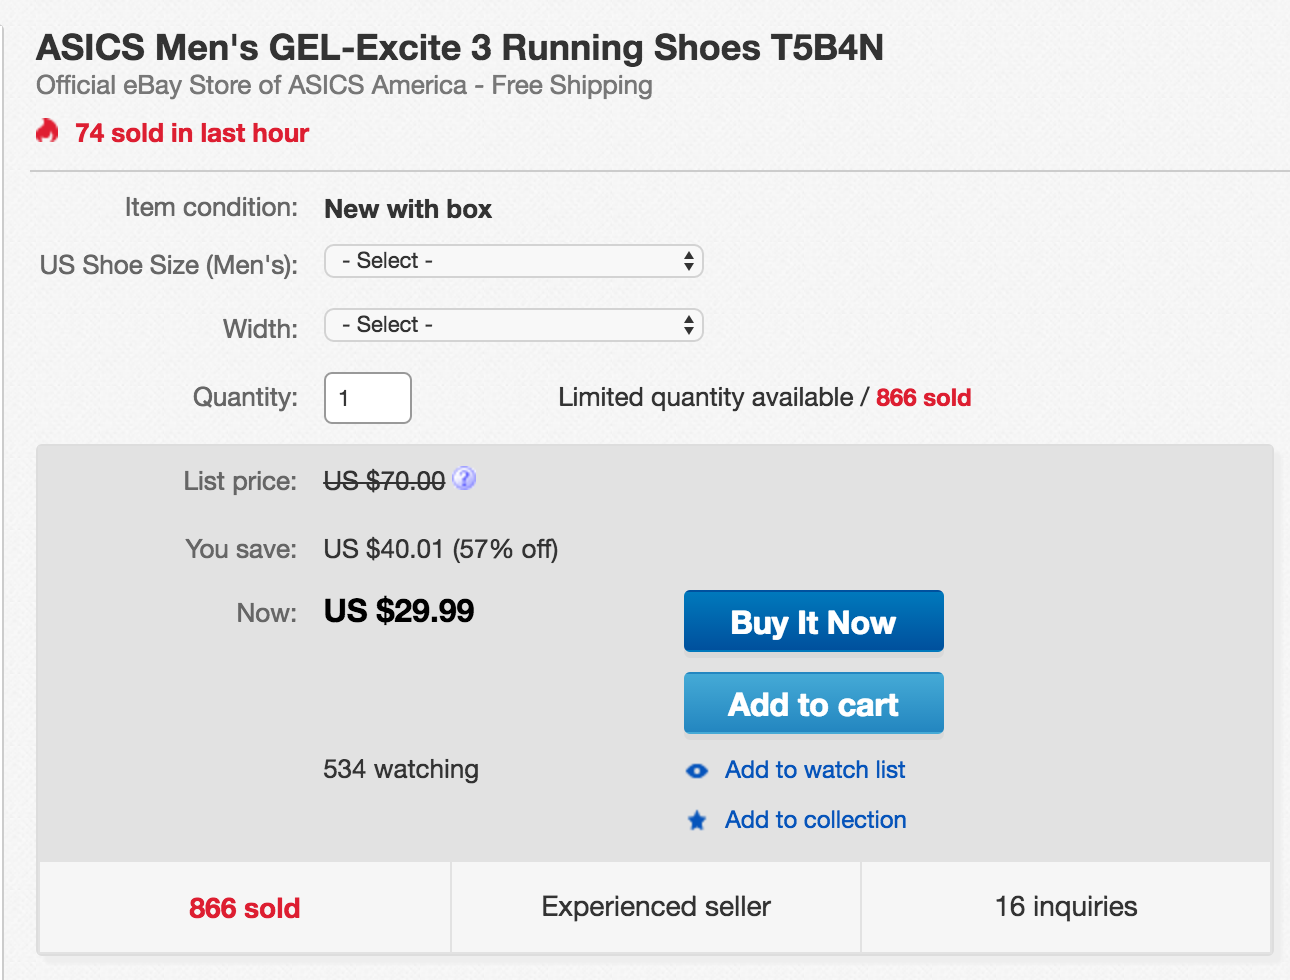 Grab a new pair of ASICS running shoes